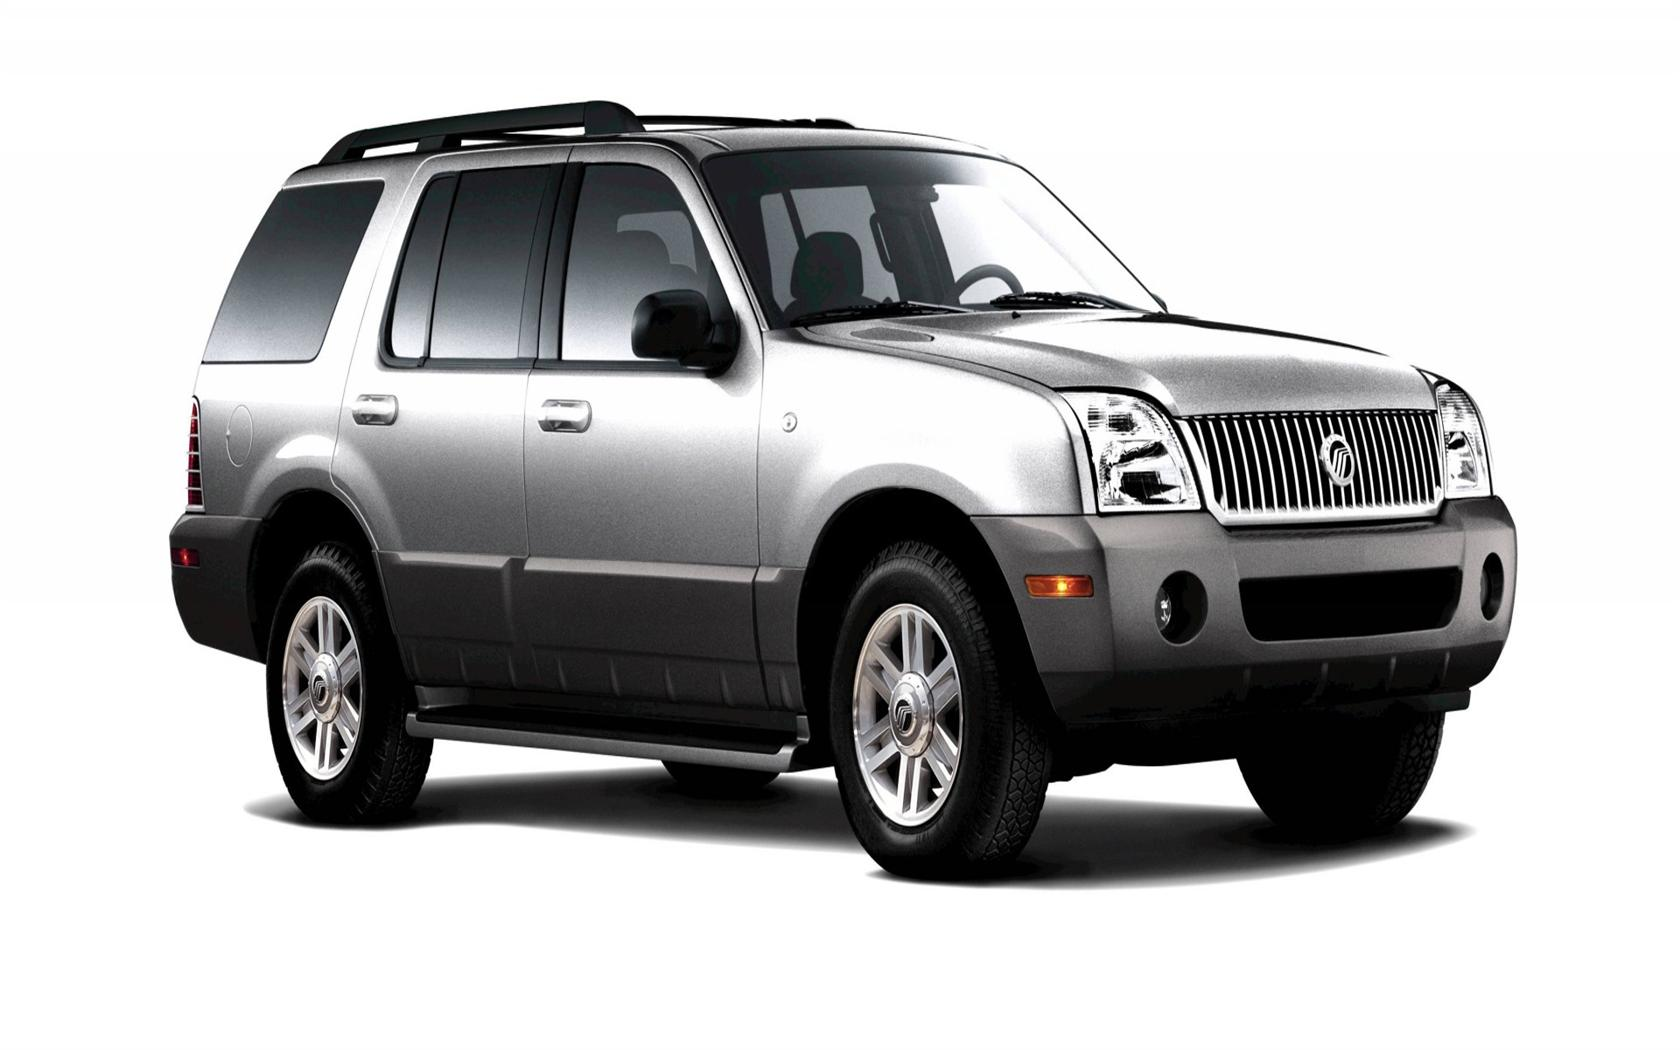 2005 mercury mountaineer image